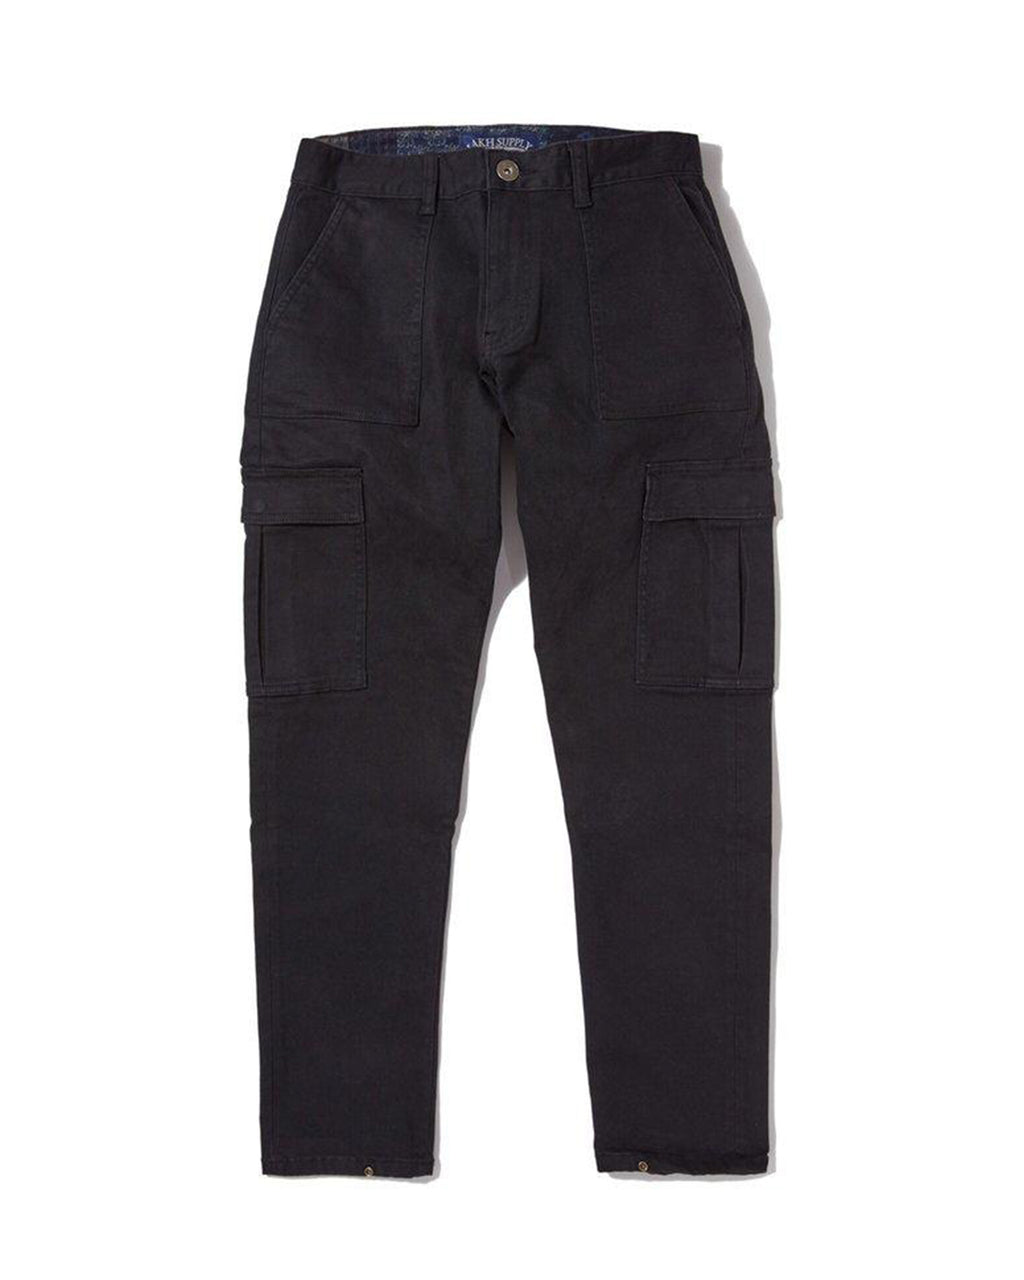 Button Pants - Fatigue Cargo Black